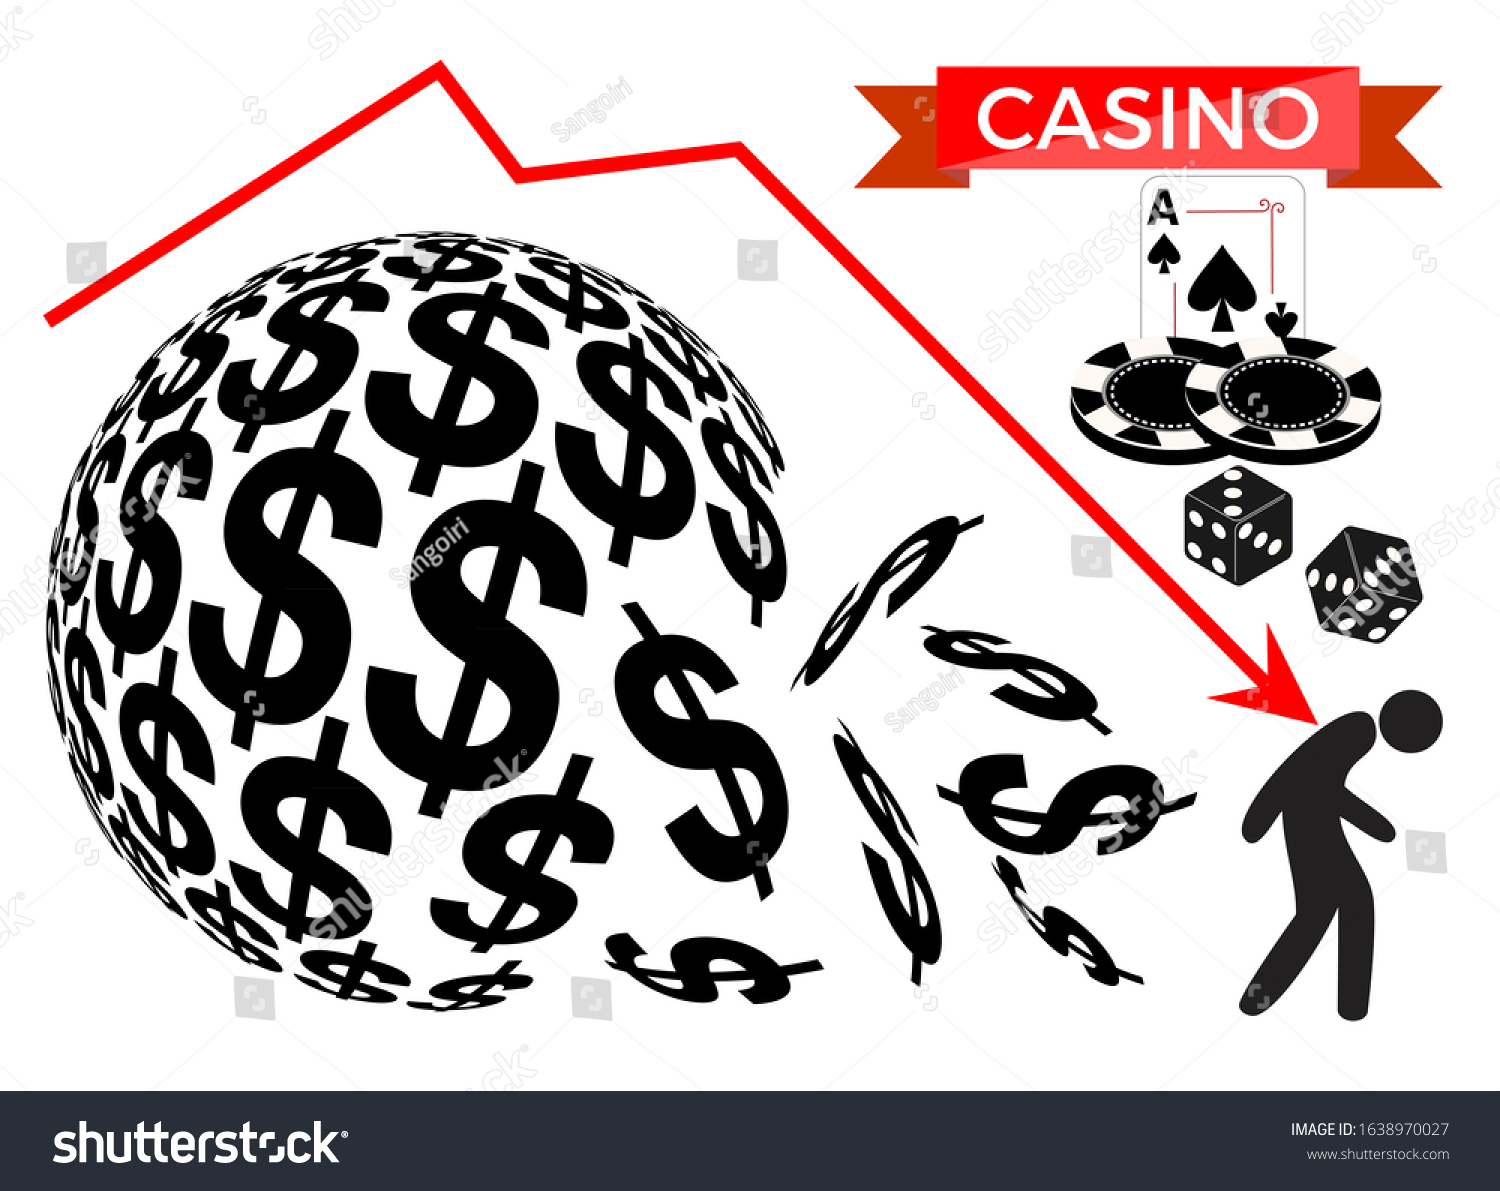 images gambling addiction sphere